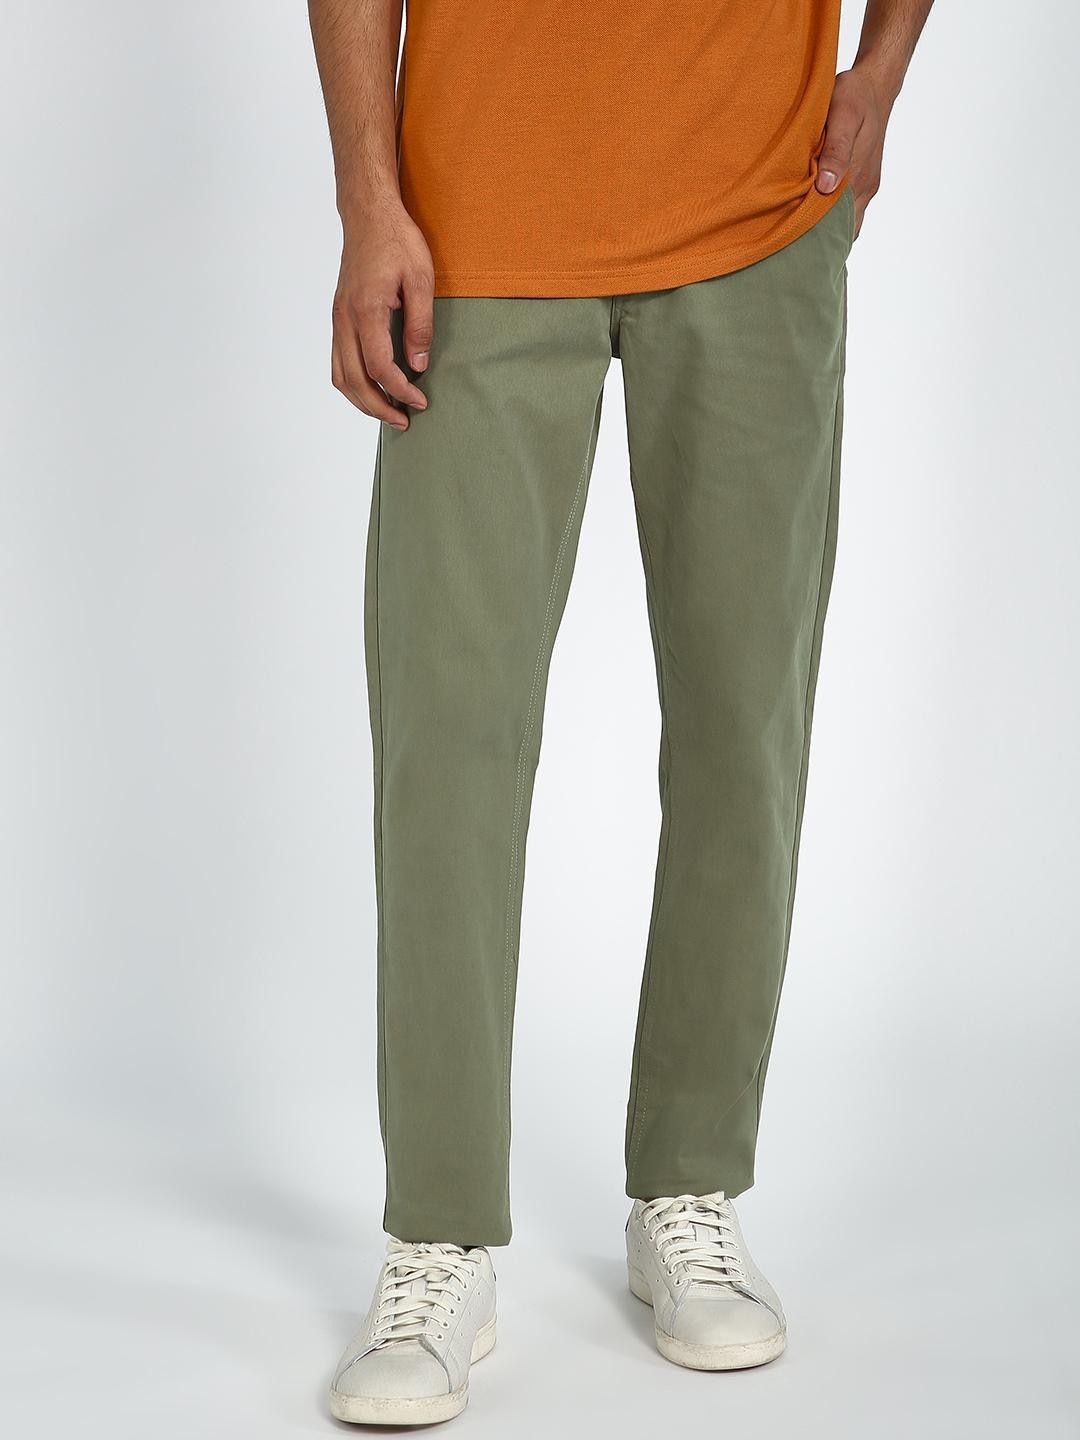 Blue Saint Olive Basic Slim Fit Trouser 1